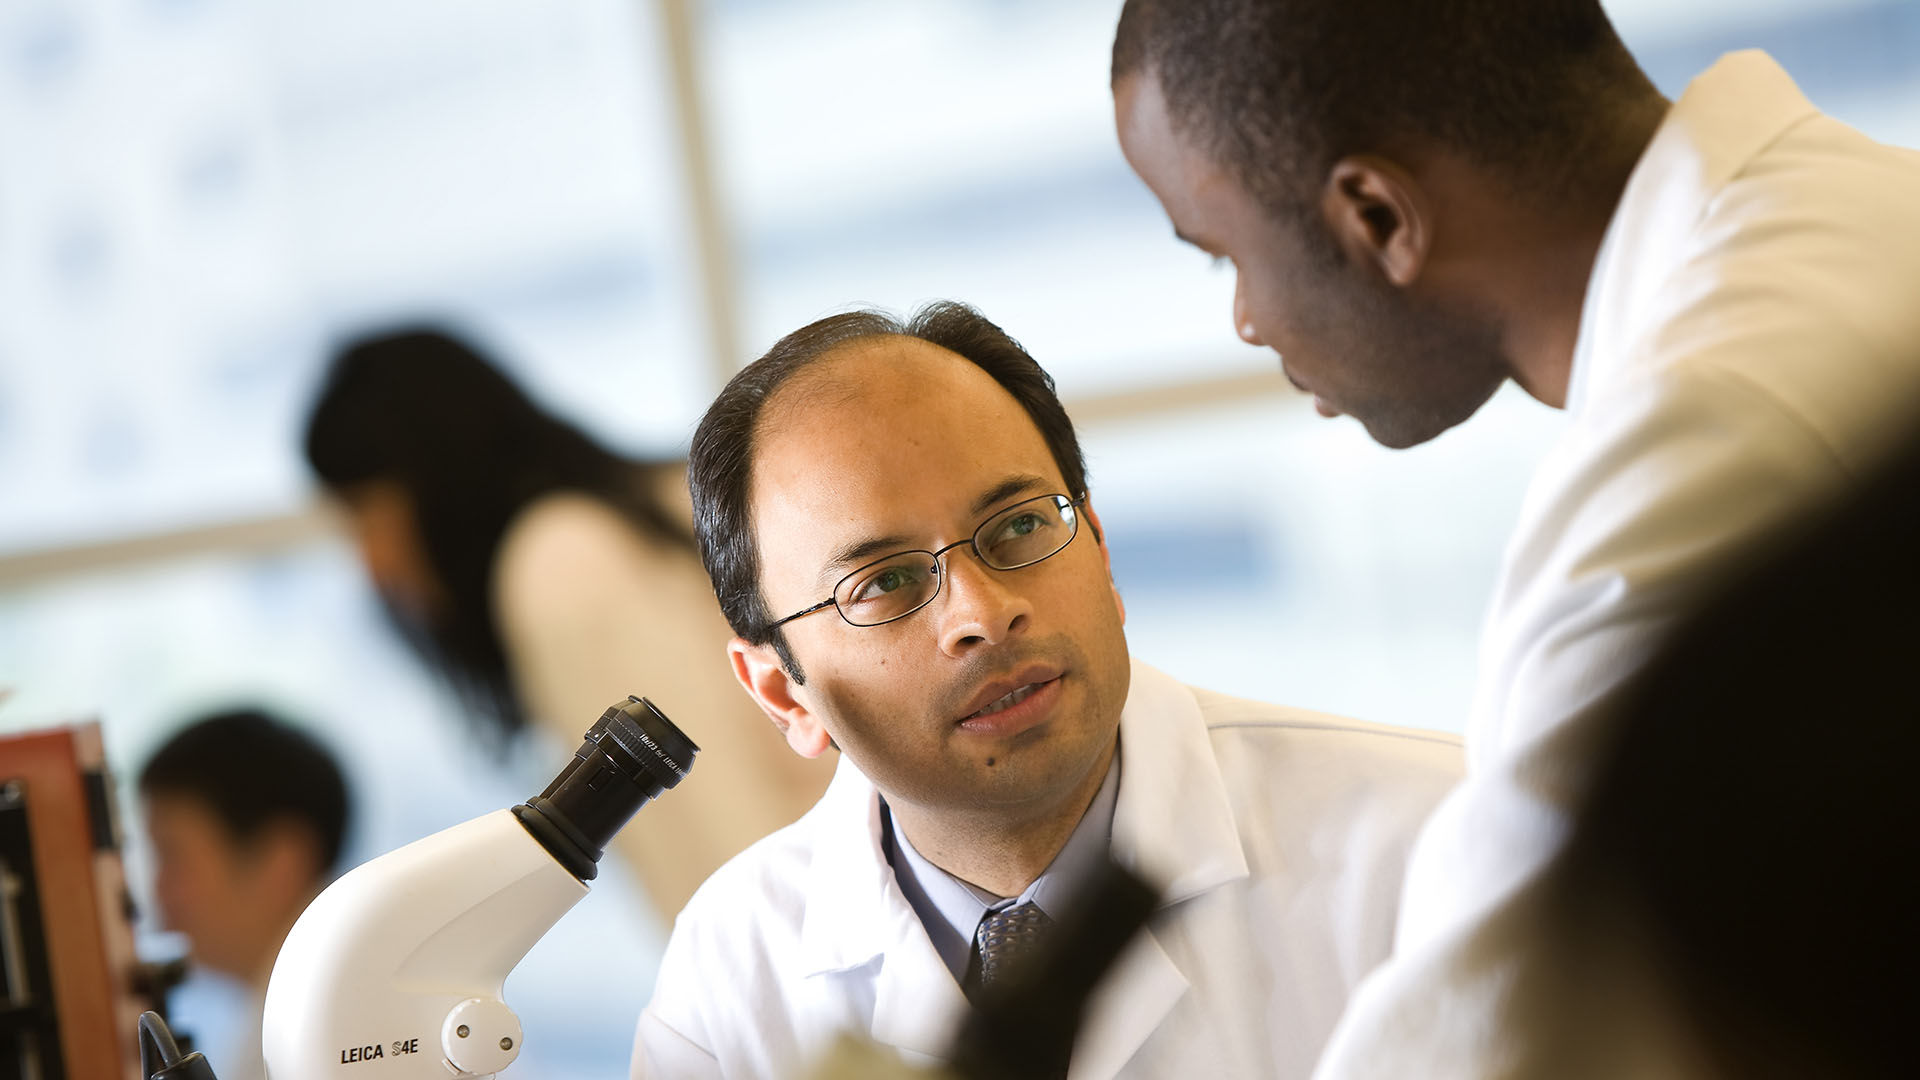 Dr. Mukesh Jain interacts with a young male colleague at a microscope.